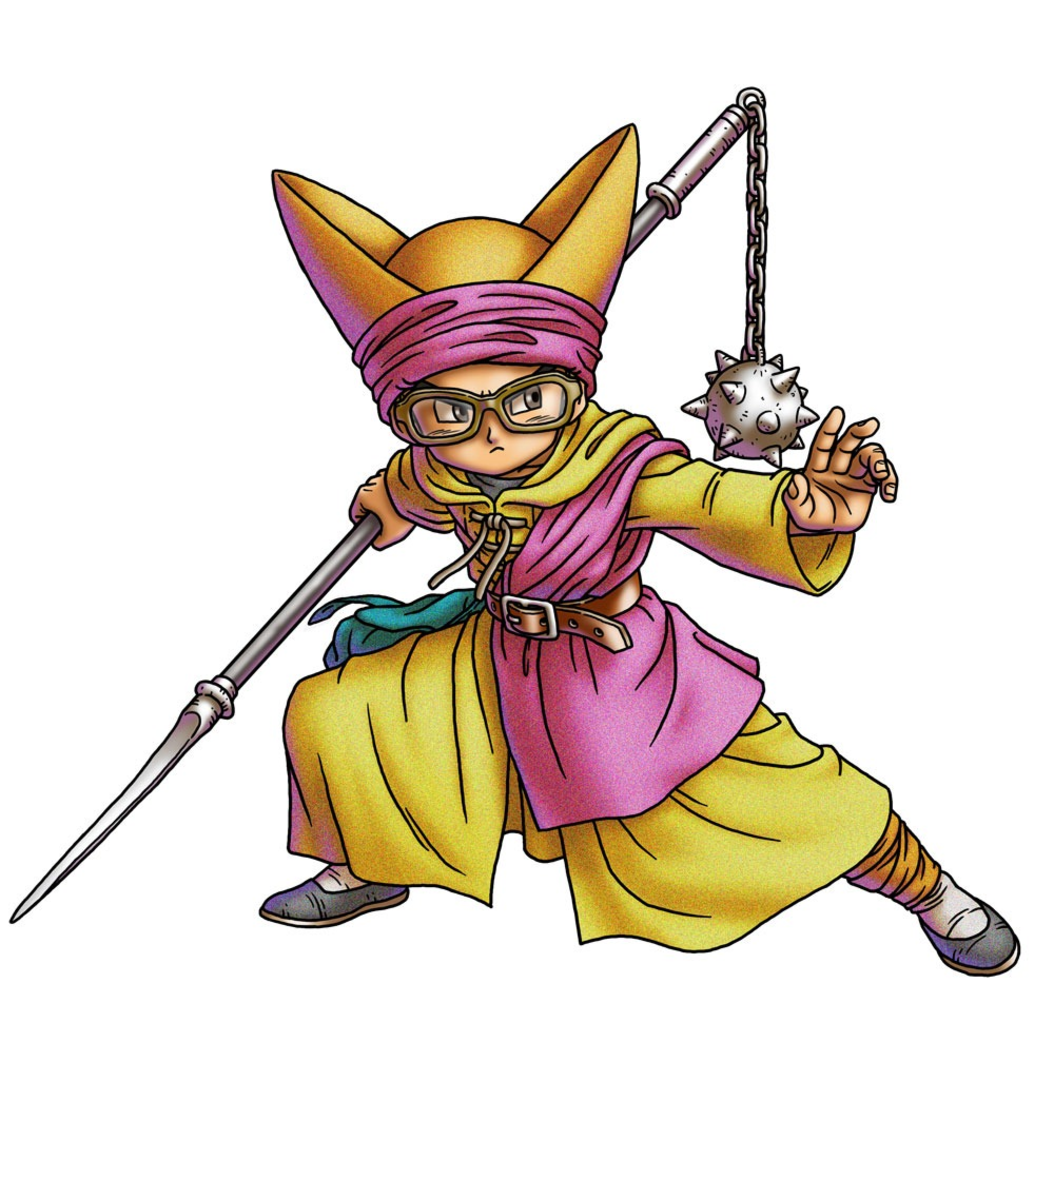 How To Beat Mortamor In Dragon Quest Vi Levelskip Video Games Subscribe for more awsome armors and watch more and go exploe the world of prodigy! beat mortamor in dragon quest vi